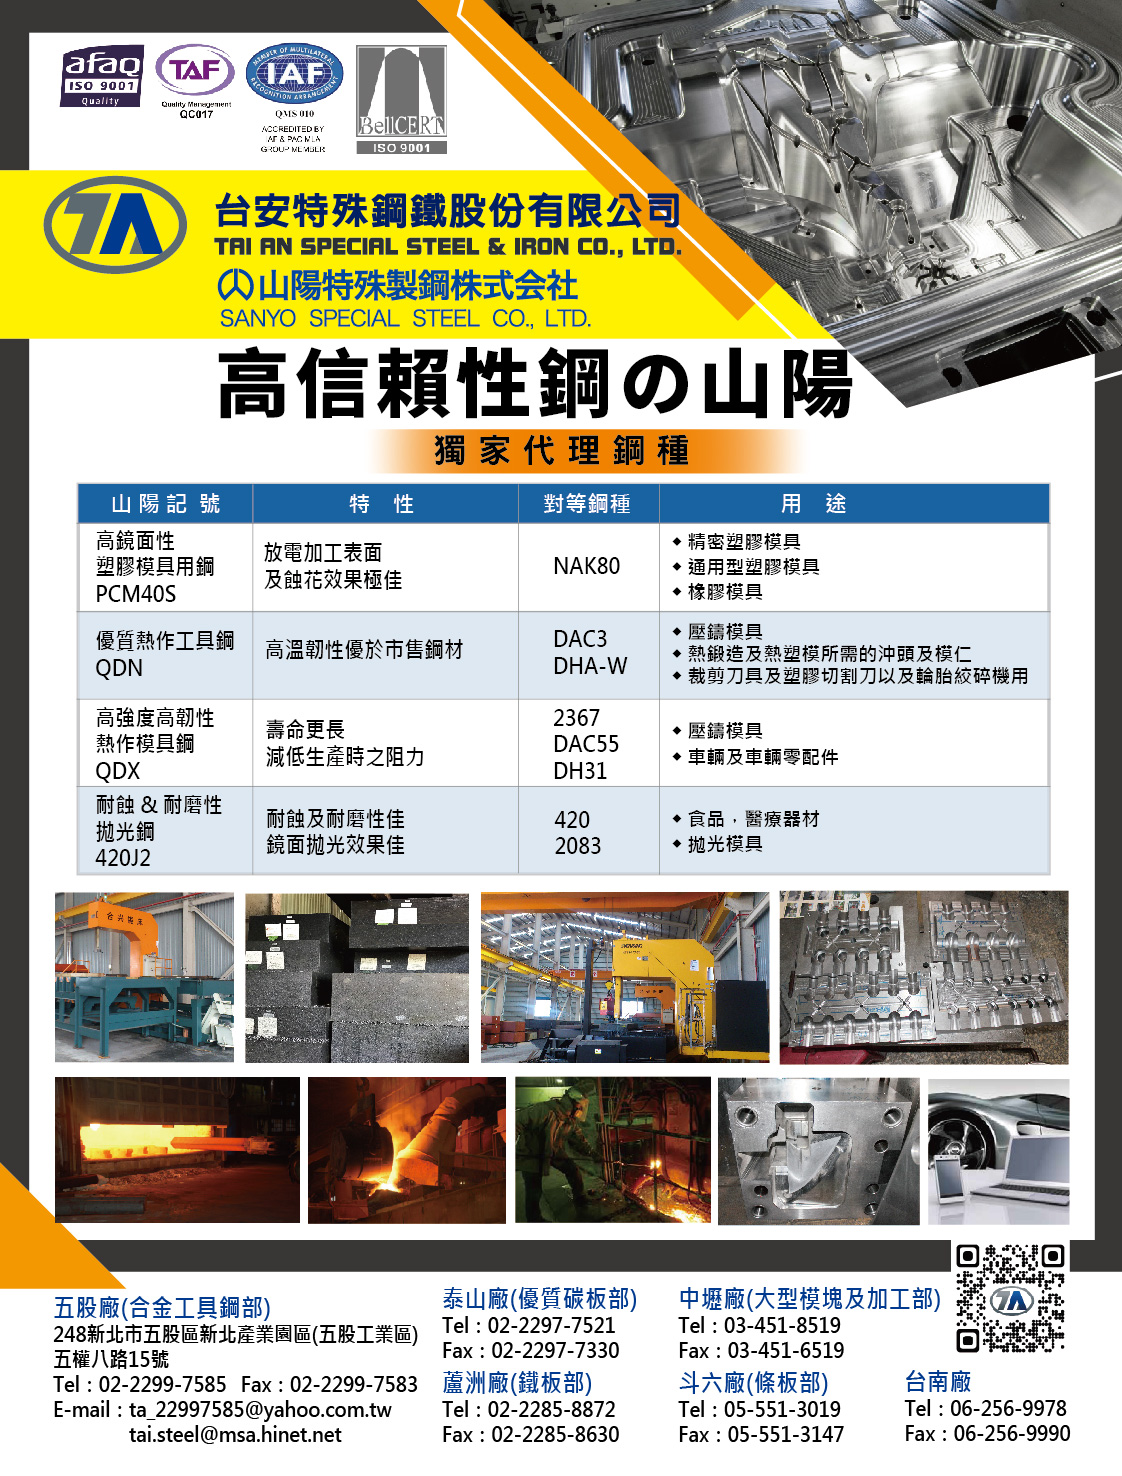 TAI AN SPECIAL STEEL & IRON CO., LTD.